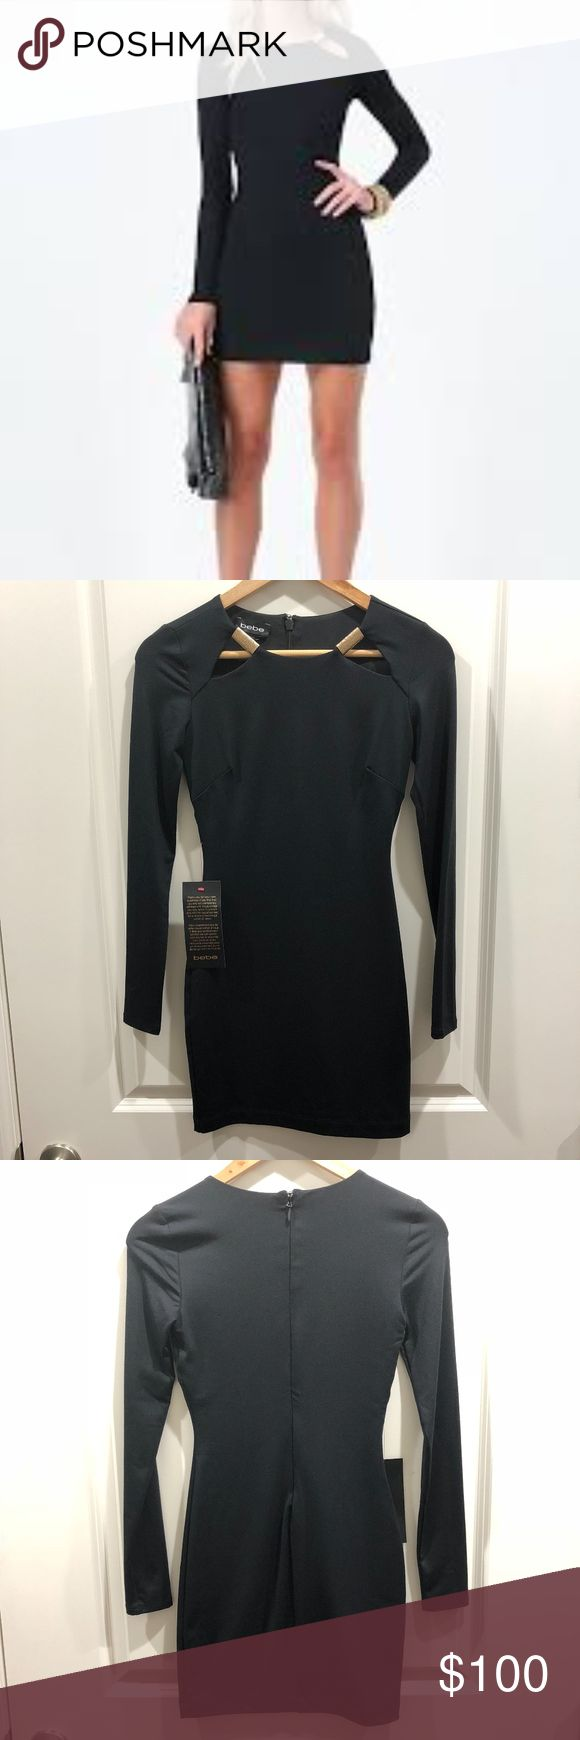 "Bebe • Long Sleeve Front Keyhole Dress Size XXS Minimalist dress in a supple jersey. Features sleek neckline cutouts, each accented by a luxe goldtone bar. Long sleeves. Hidden back hook-and-eye and zip closure. Partially lined.  • Armpit to Armpit: 22.5"" • Length: 28.5"" • Sleeve length (armpit to wrist): 28.5"" • Condition: New With Tags • Measurements are approximate when laid flat • Smoke/pet free home bebe Dresses"